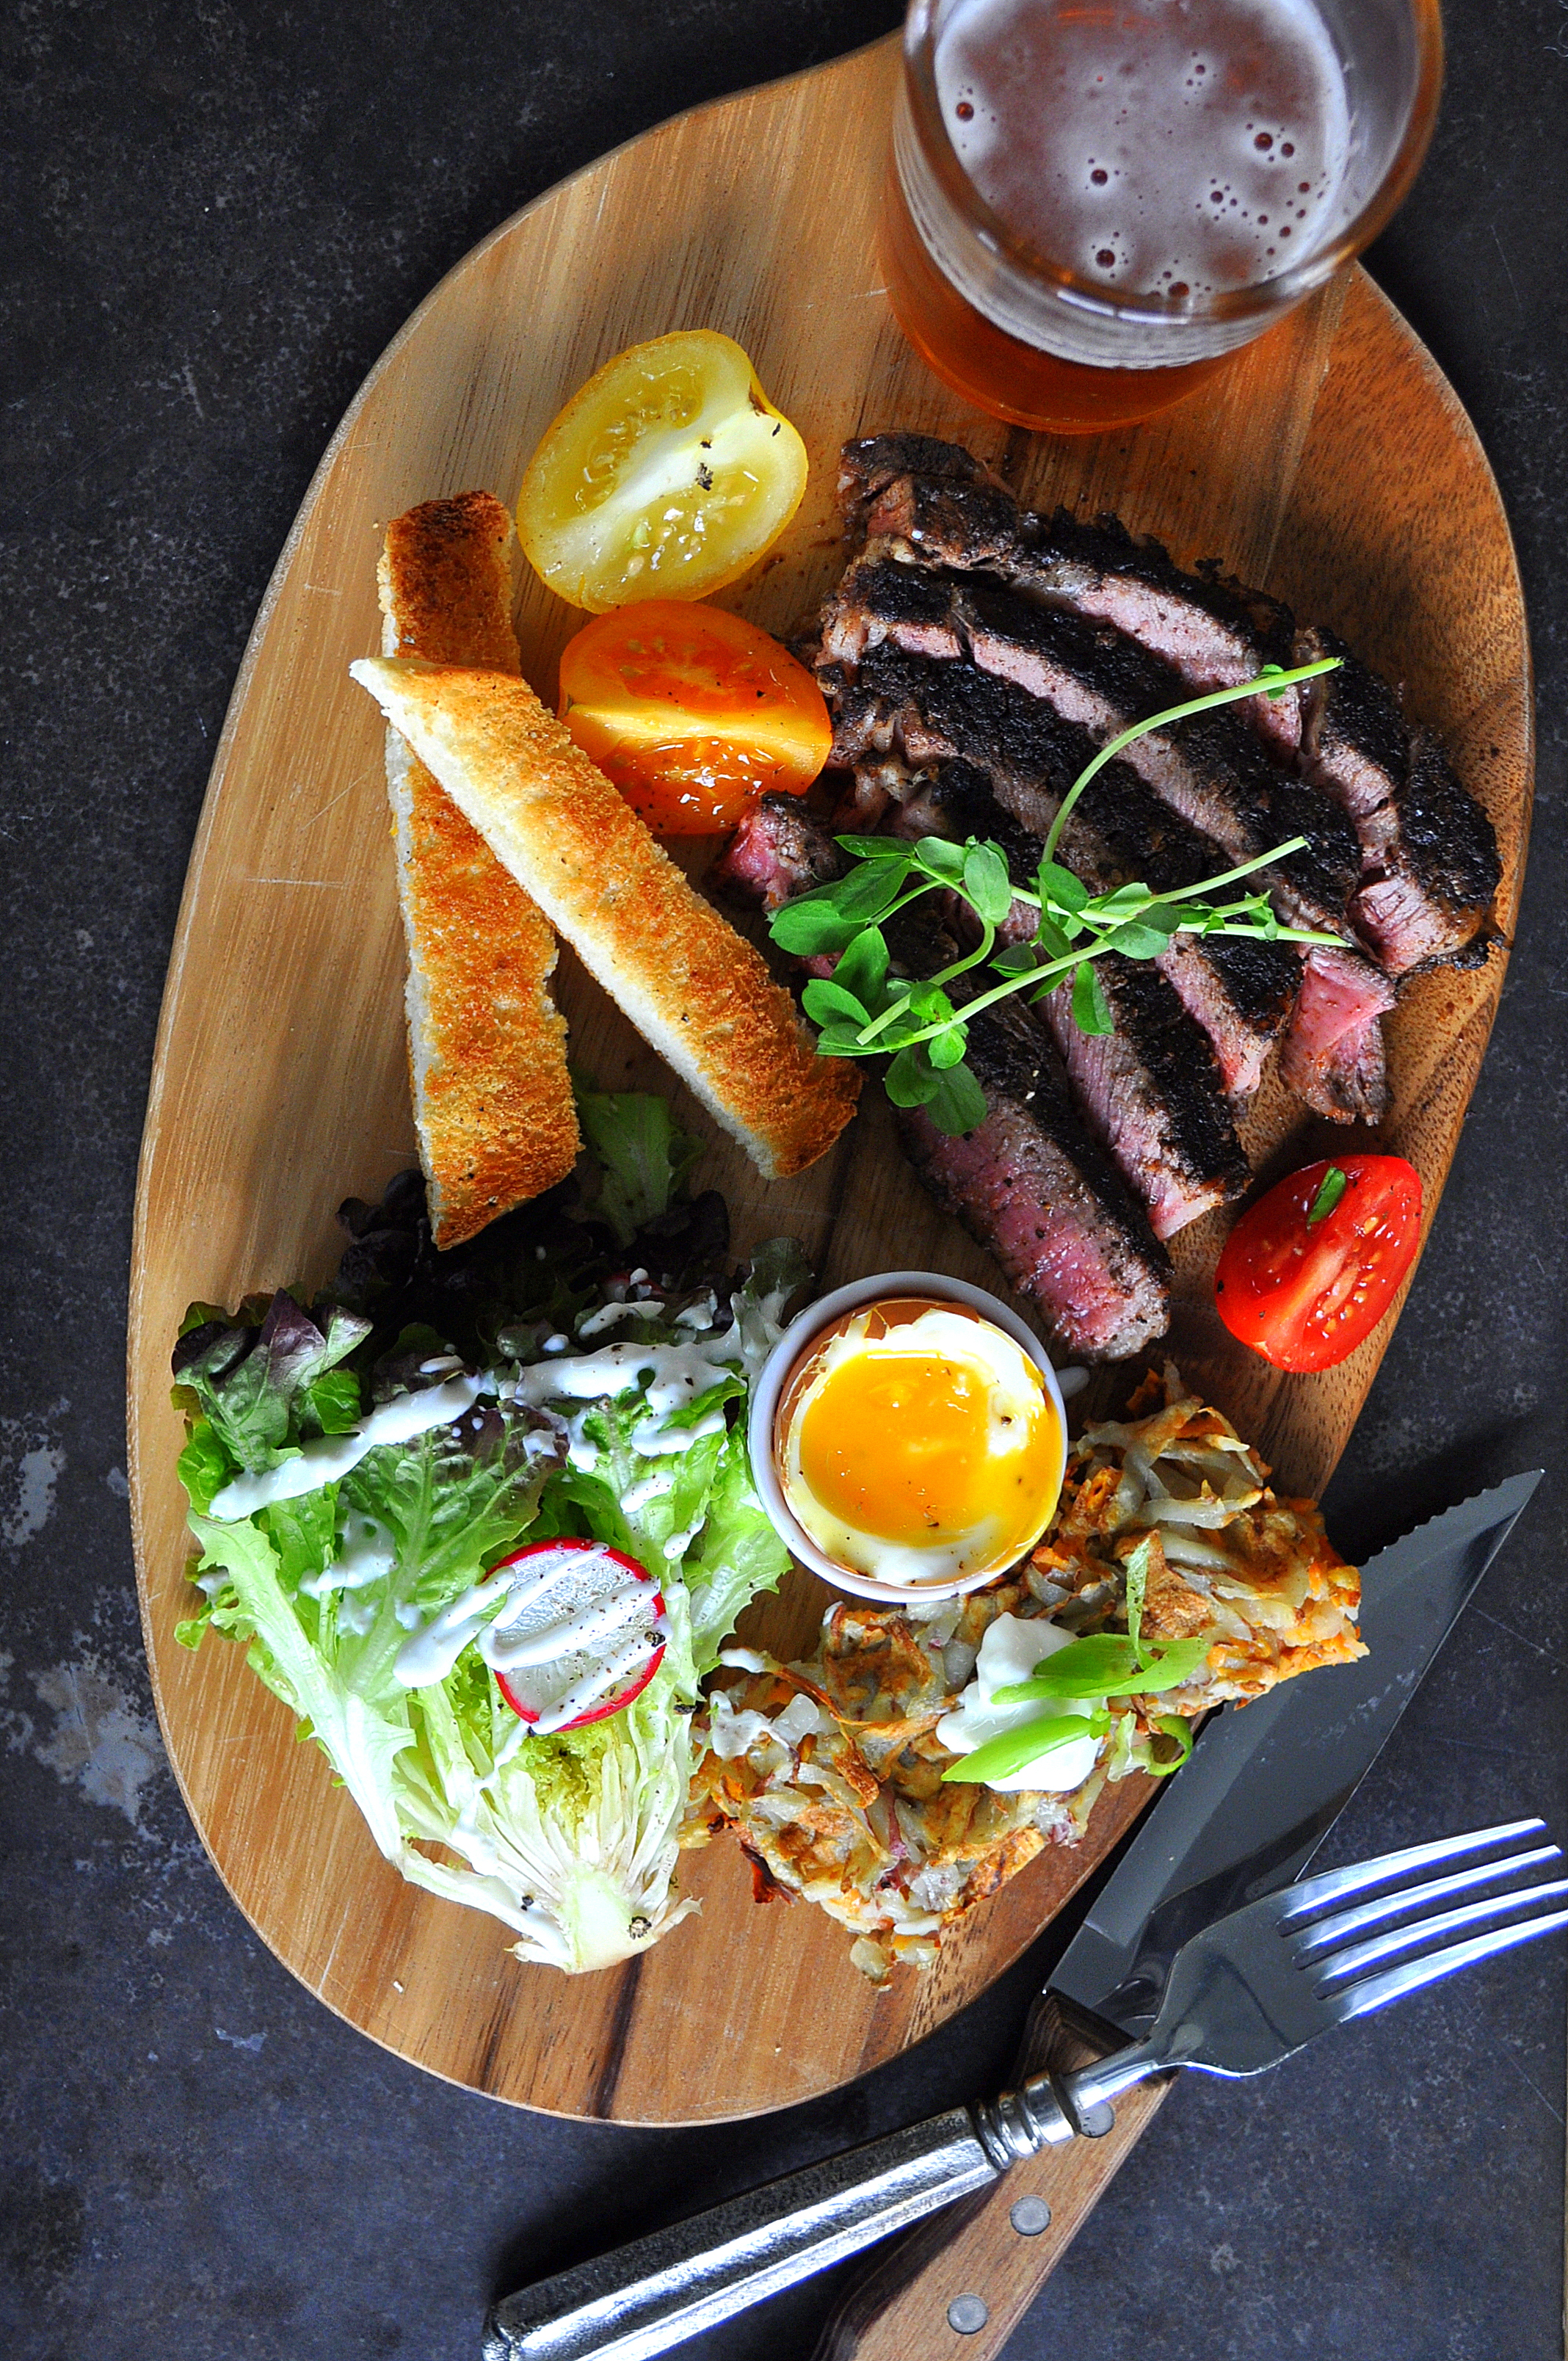 On Board in 20: Blackened Steak & Waffled Potatoes by Food Well Said